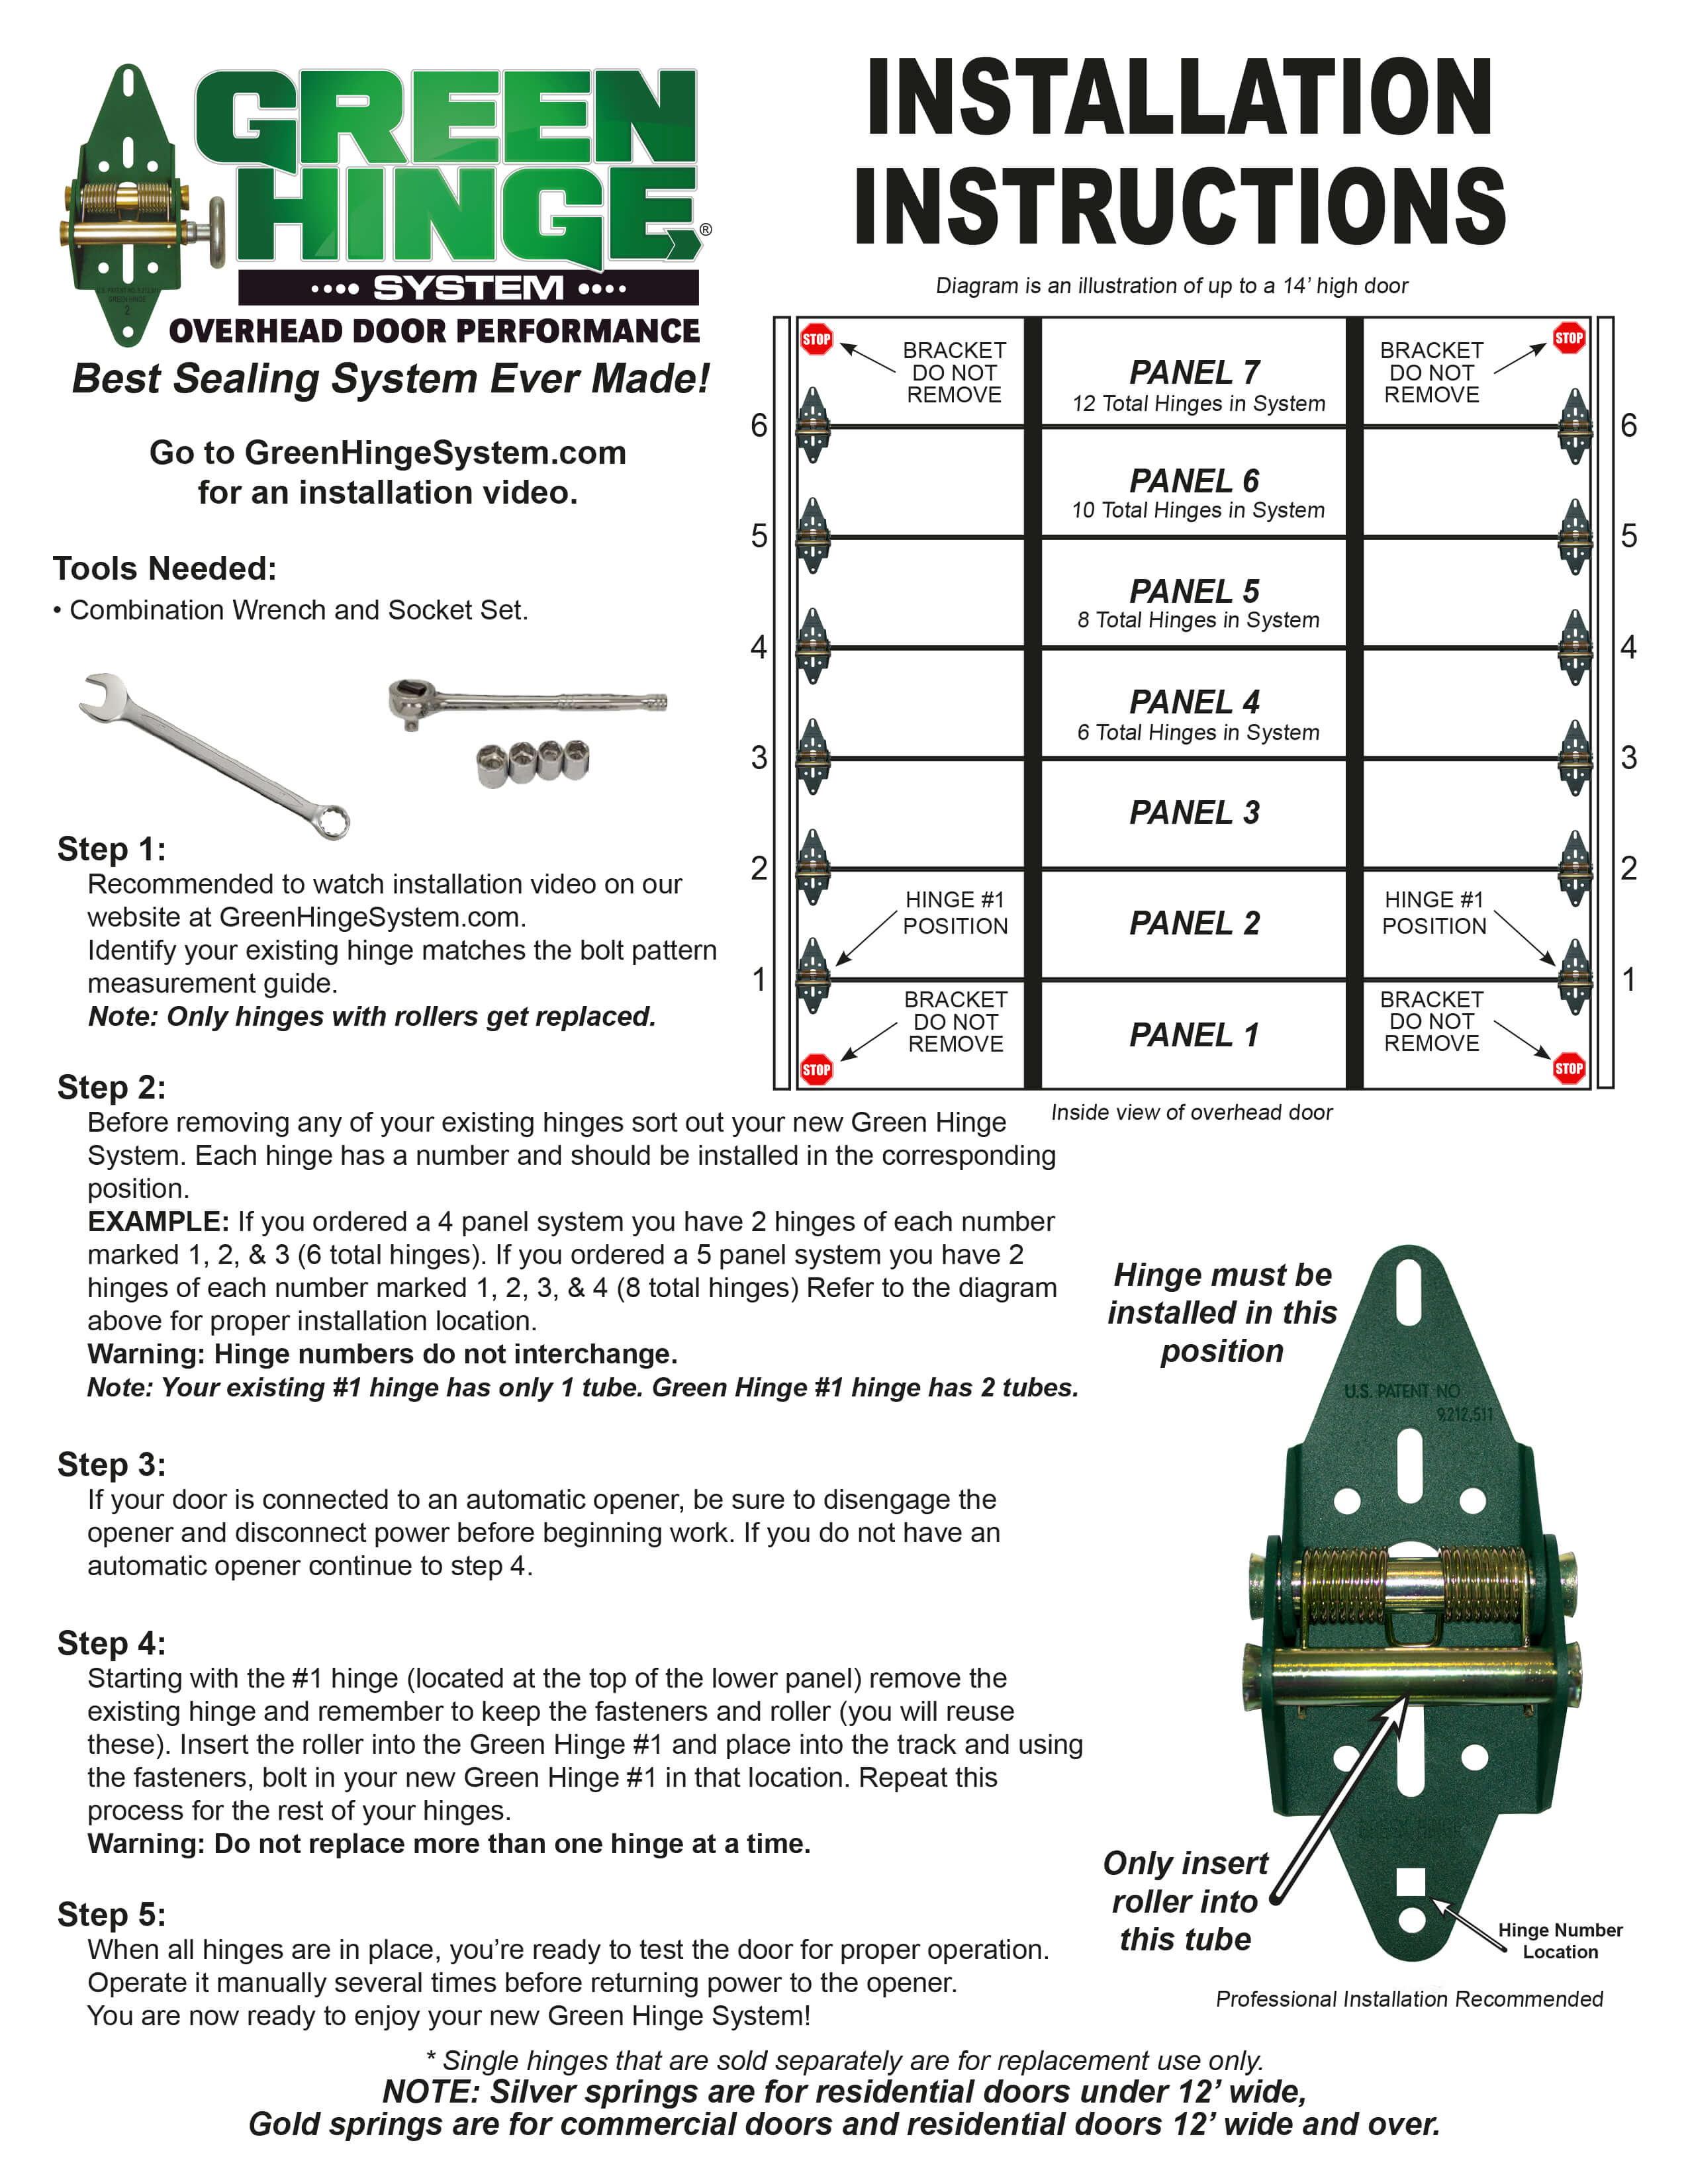 Installation instructions - Green Hinge System